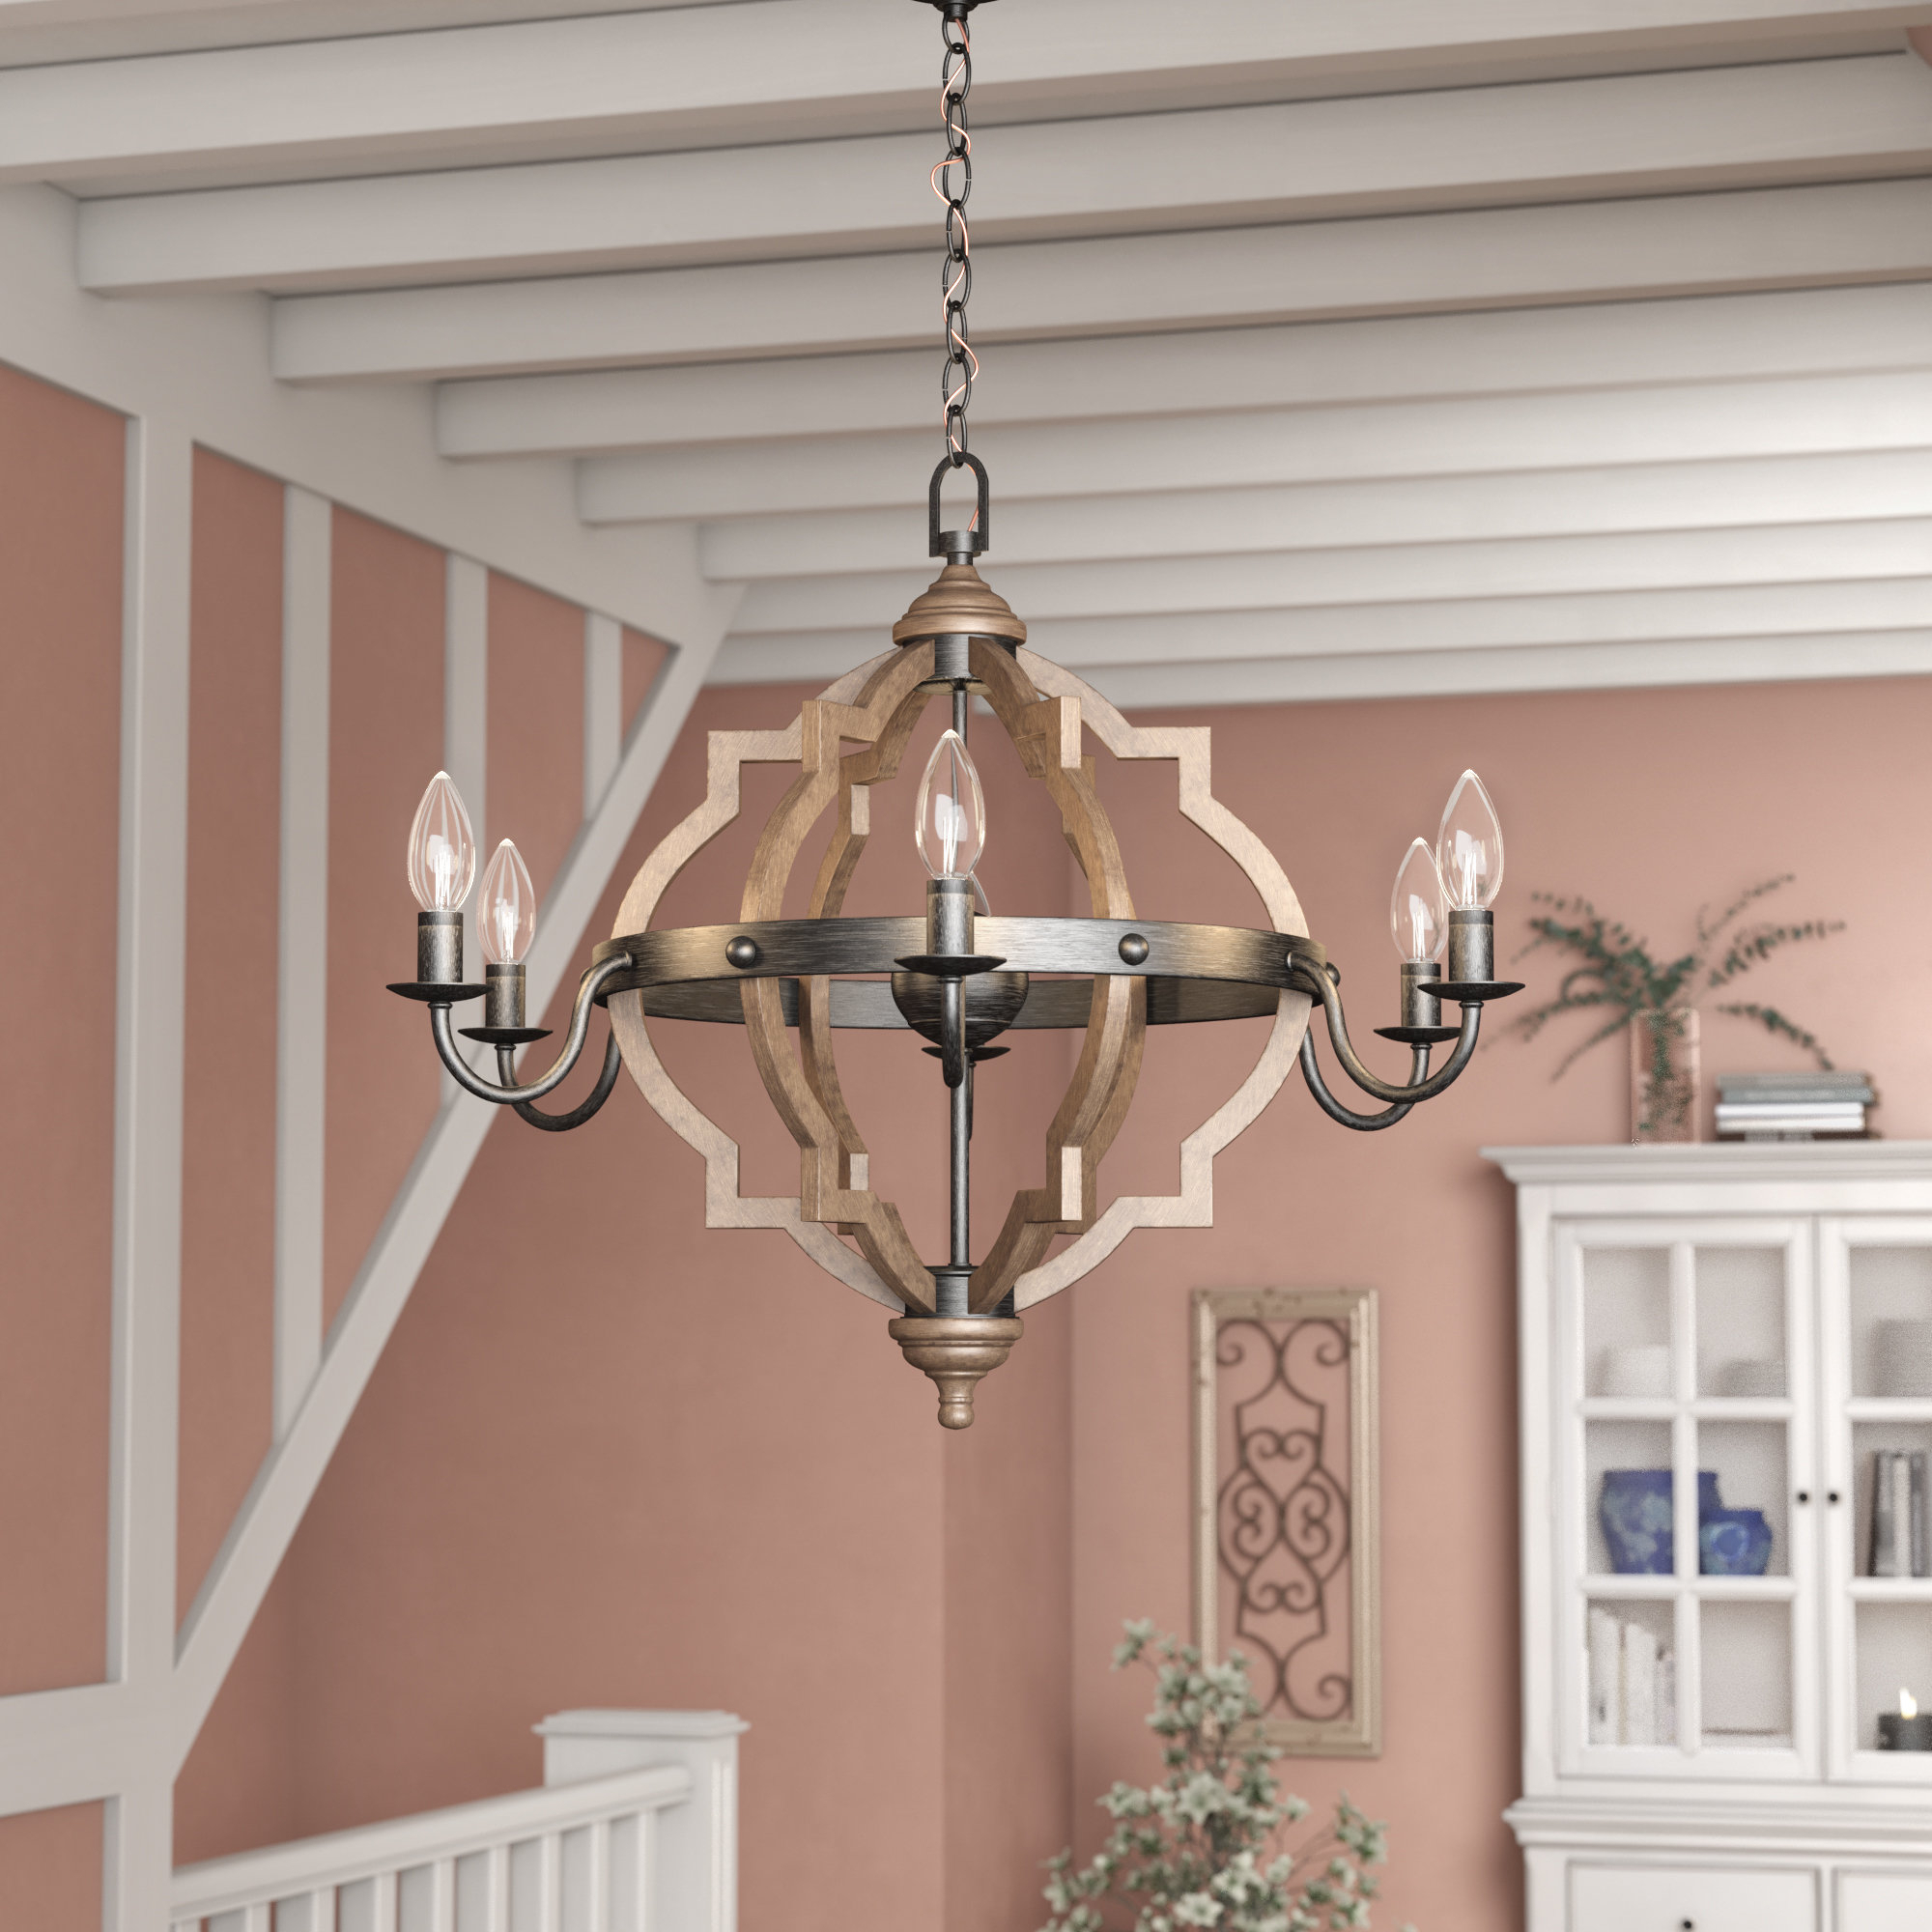 Donna 6 Light Candle Style Chandelier With Regard To Bennington 6 Light Candle Style Chandeliers (Photo 7 of 30)